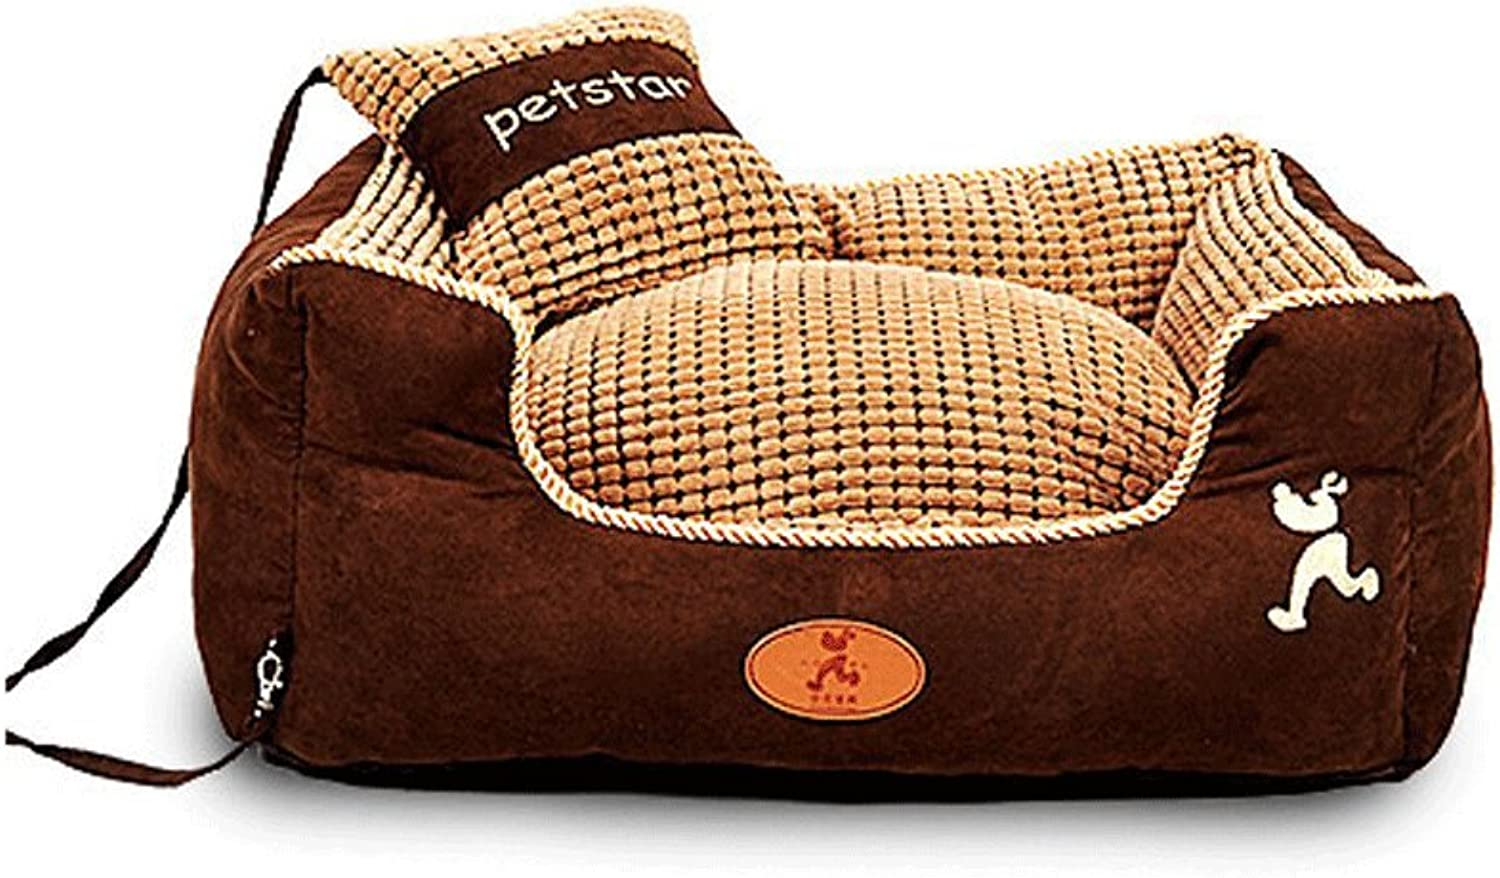 LM921 Deluxe Pet Bed for Cats and Small Medium Dogs Rectangle Cuddler with Soft Detachable Cushion brown, Washable Solid colors Nonslip Collapsible Soft Warm Dog Cat Puppy Pet Nest (Size   S)